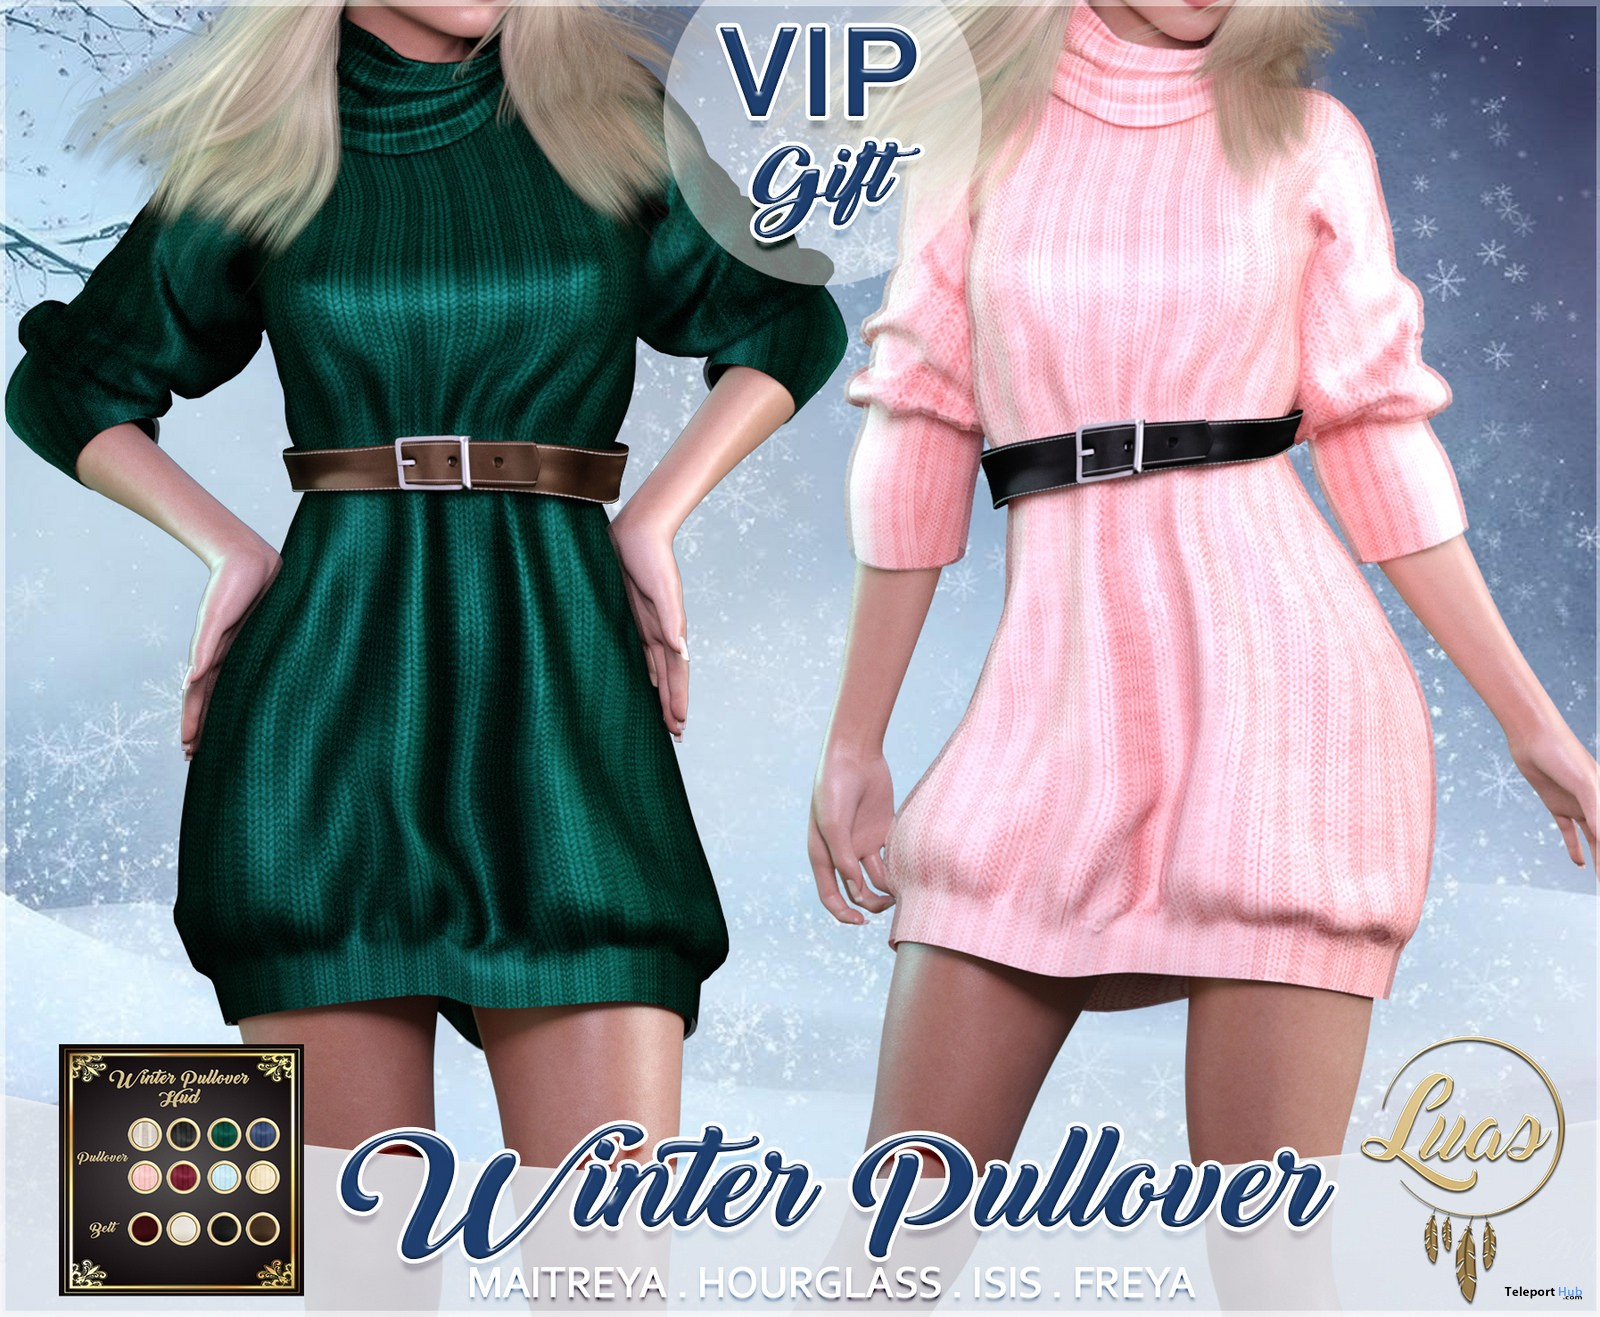 Winter Pullover Fatpack November 2018 Group Gift by Luas - Teleport Hub - teleporthub.com